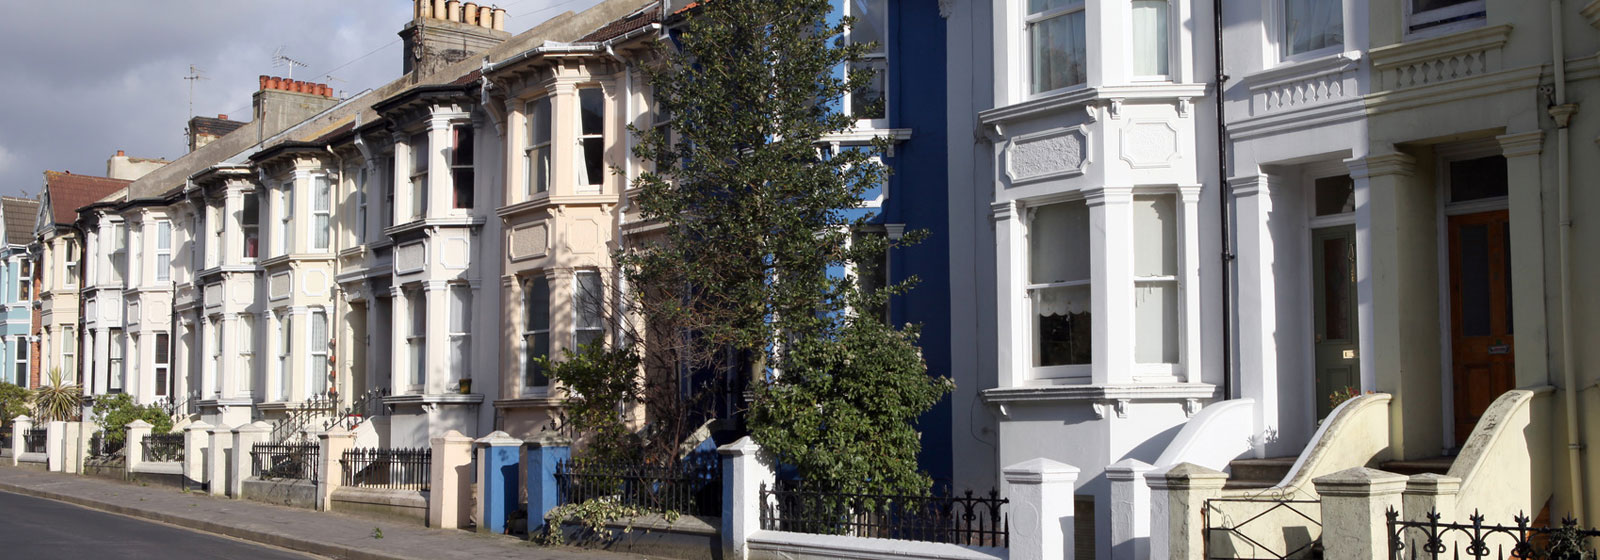 The Party Wall Company : Chartered Building Surveying Practice